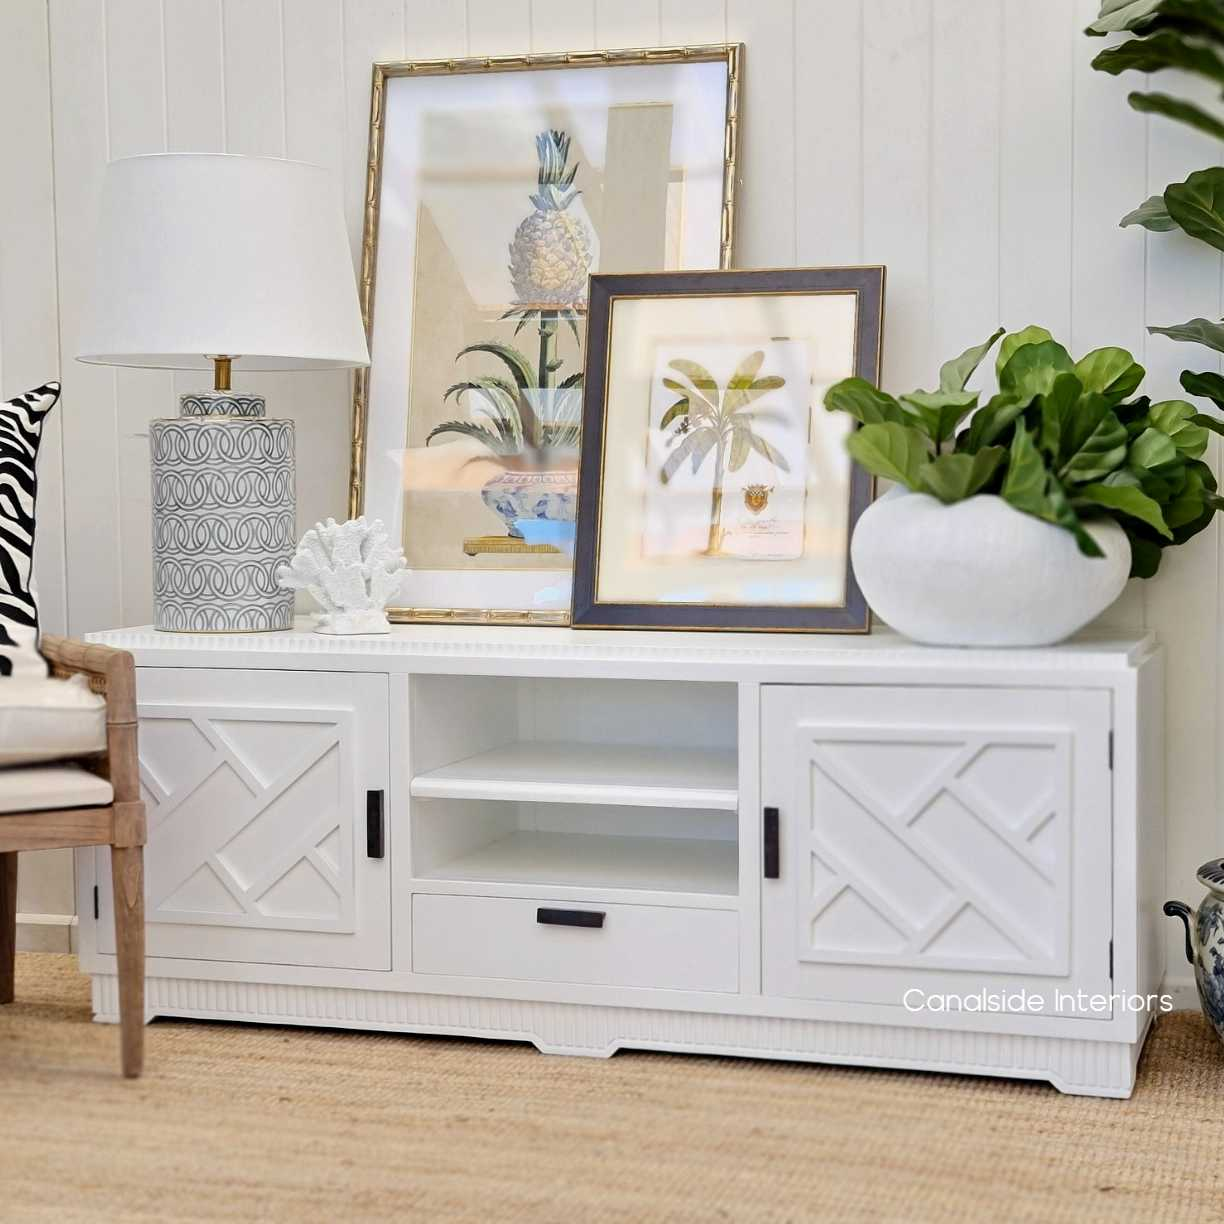 Ellery 2 Door TV Unit Sideboard White  HAMPTONS Style, PLANTATION Style, LIVING Room, LIVING TV Media & Storage, TABLES Sideboards & Buffets, STORAGE, STORAGE Sideboards & Buffets, PLANTATION STYLE Media Unit hollywood regency hollywood glam chinoiserie